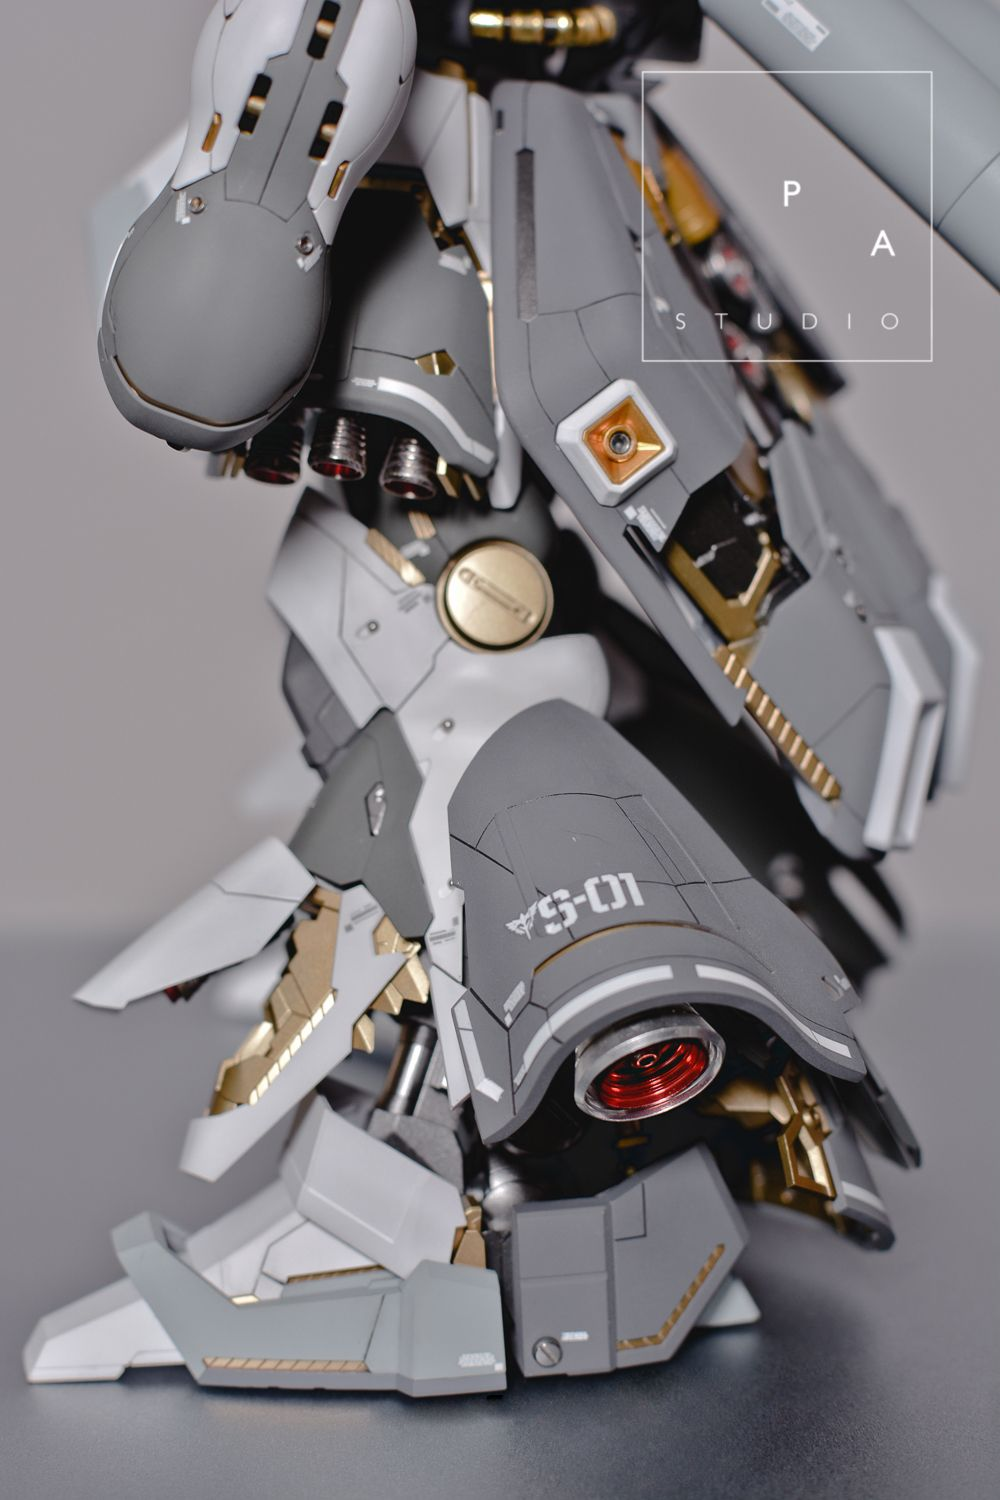 """gundamexousia: Title: Sazabi """"der Schnee + Quad Gatling Gun"""" Modification Modeler: PA StudioModel Type: Metal parts, custom panel line, custom color scheme, detailingKits Used: MG 1/100 Sazabi ver. KaAbout the Kit:""""I am totally inspired by ihaveyen's Snow Sazabi. So, i decided to make my own version based on his sazabi. I added some custom panel line to enhance the complex look of sazabi ver. ka. I did some color separation too for the armor and frame"""" Like this kit? Get it at Amazon!..."""